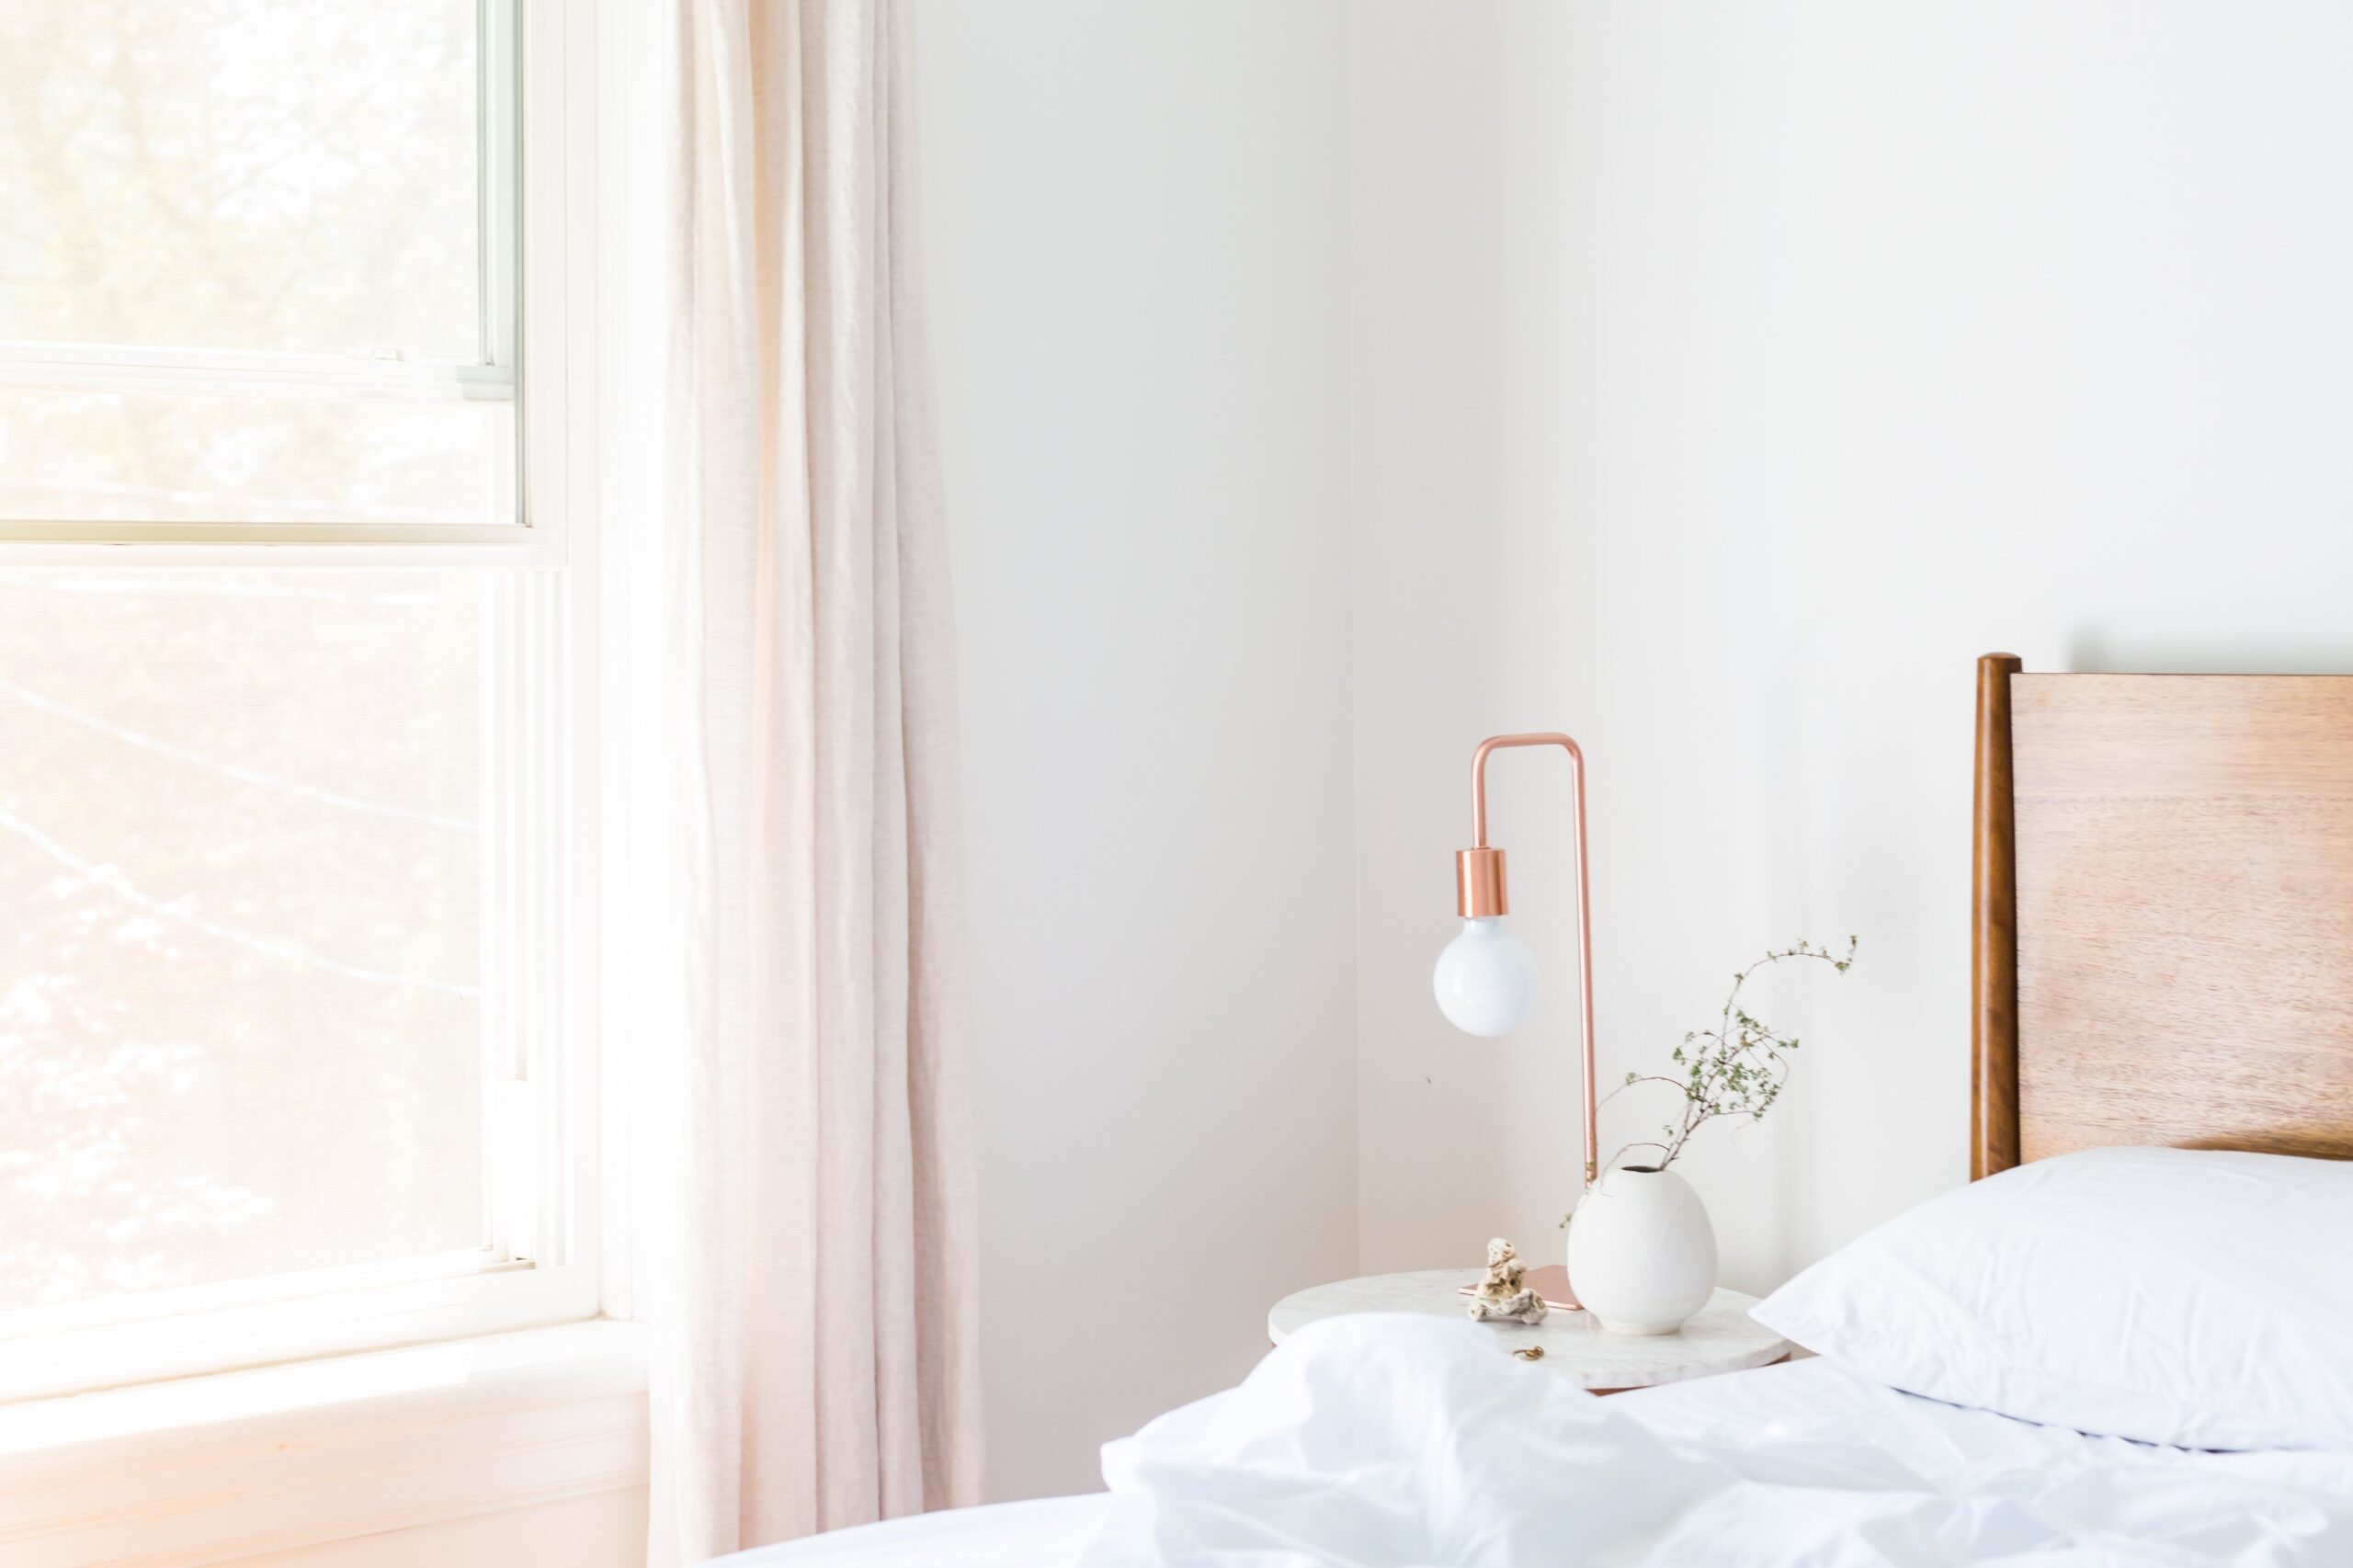 6 Emerging Home Trends to Watch